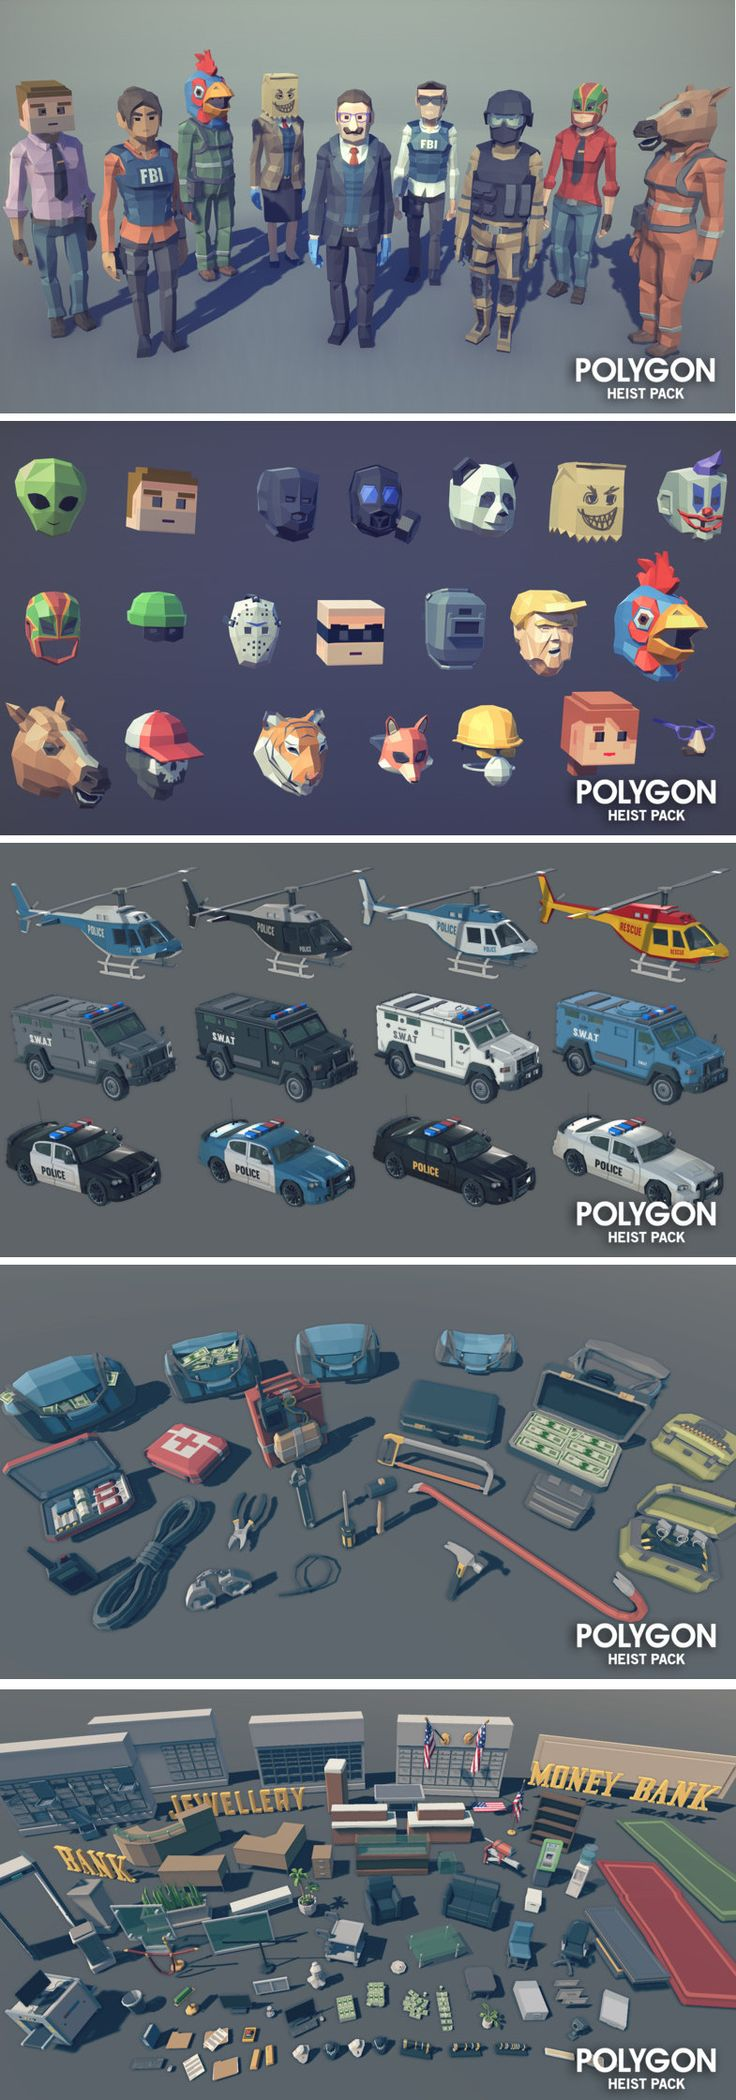 POLYGON - Heist Pack A low poly asset pack of characters, props, vehicles, weapons and environment assets to create an action packed polygonal style game. Modular sections are easy to piece together in a variety of combinations.Includes a demo scene (Character poses indicative only) - Modular Interior and Exterior Bank Set - Modular Bank Vault Set - Modular Jewelry store Set - Modular Offices - Modular Bank Atrium